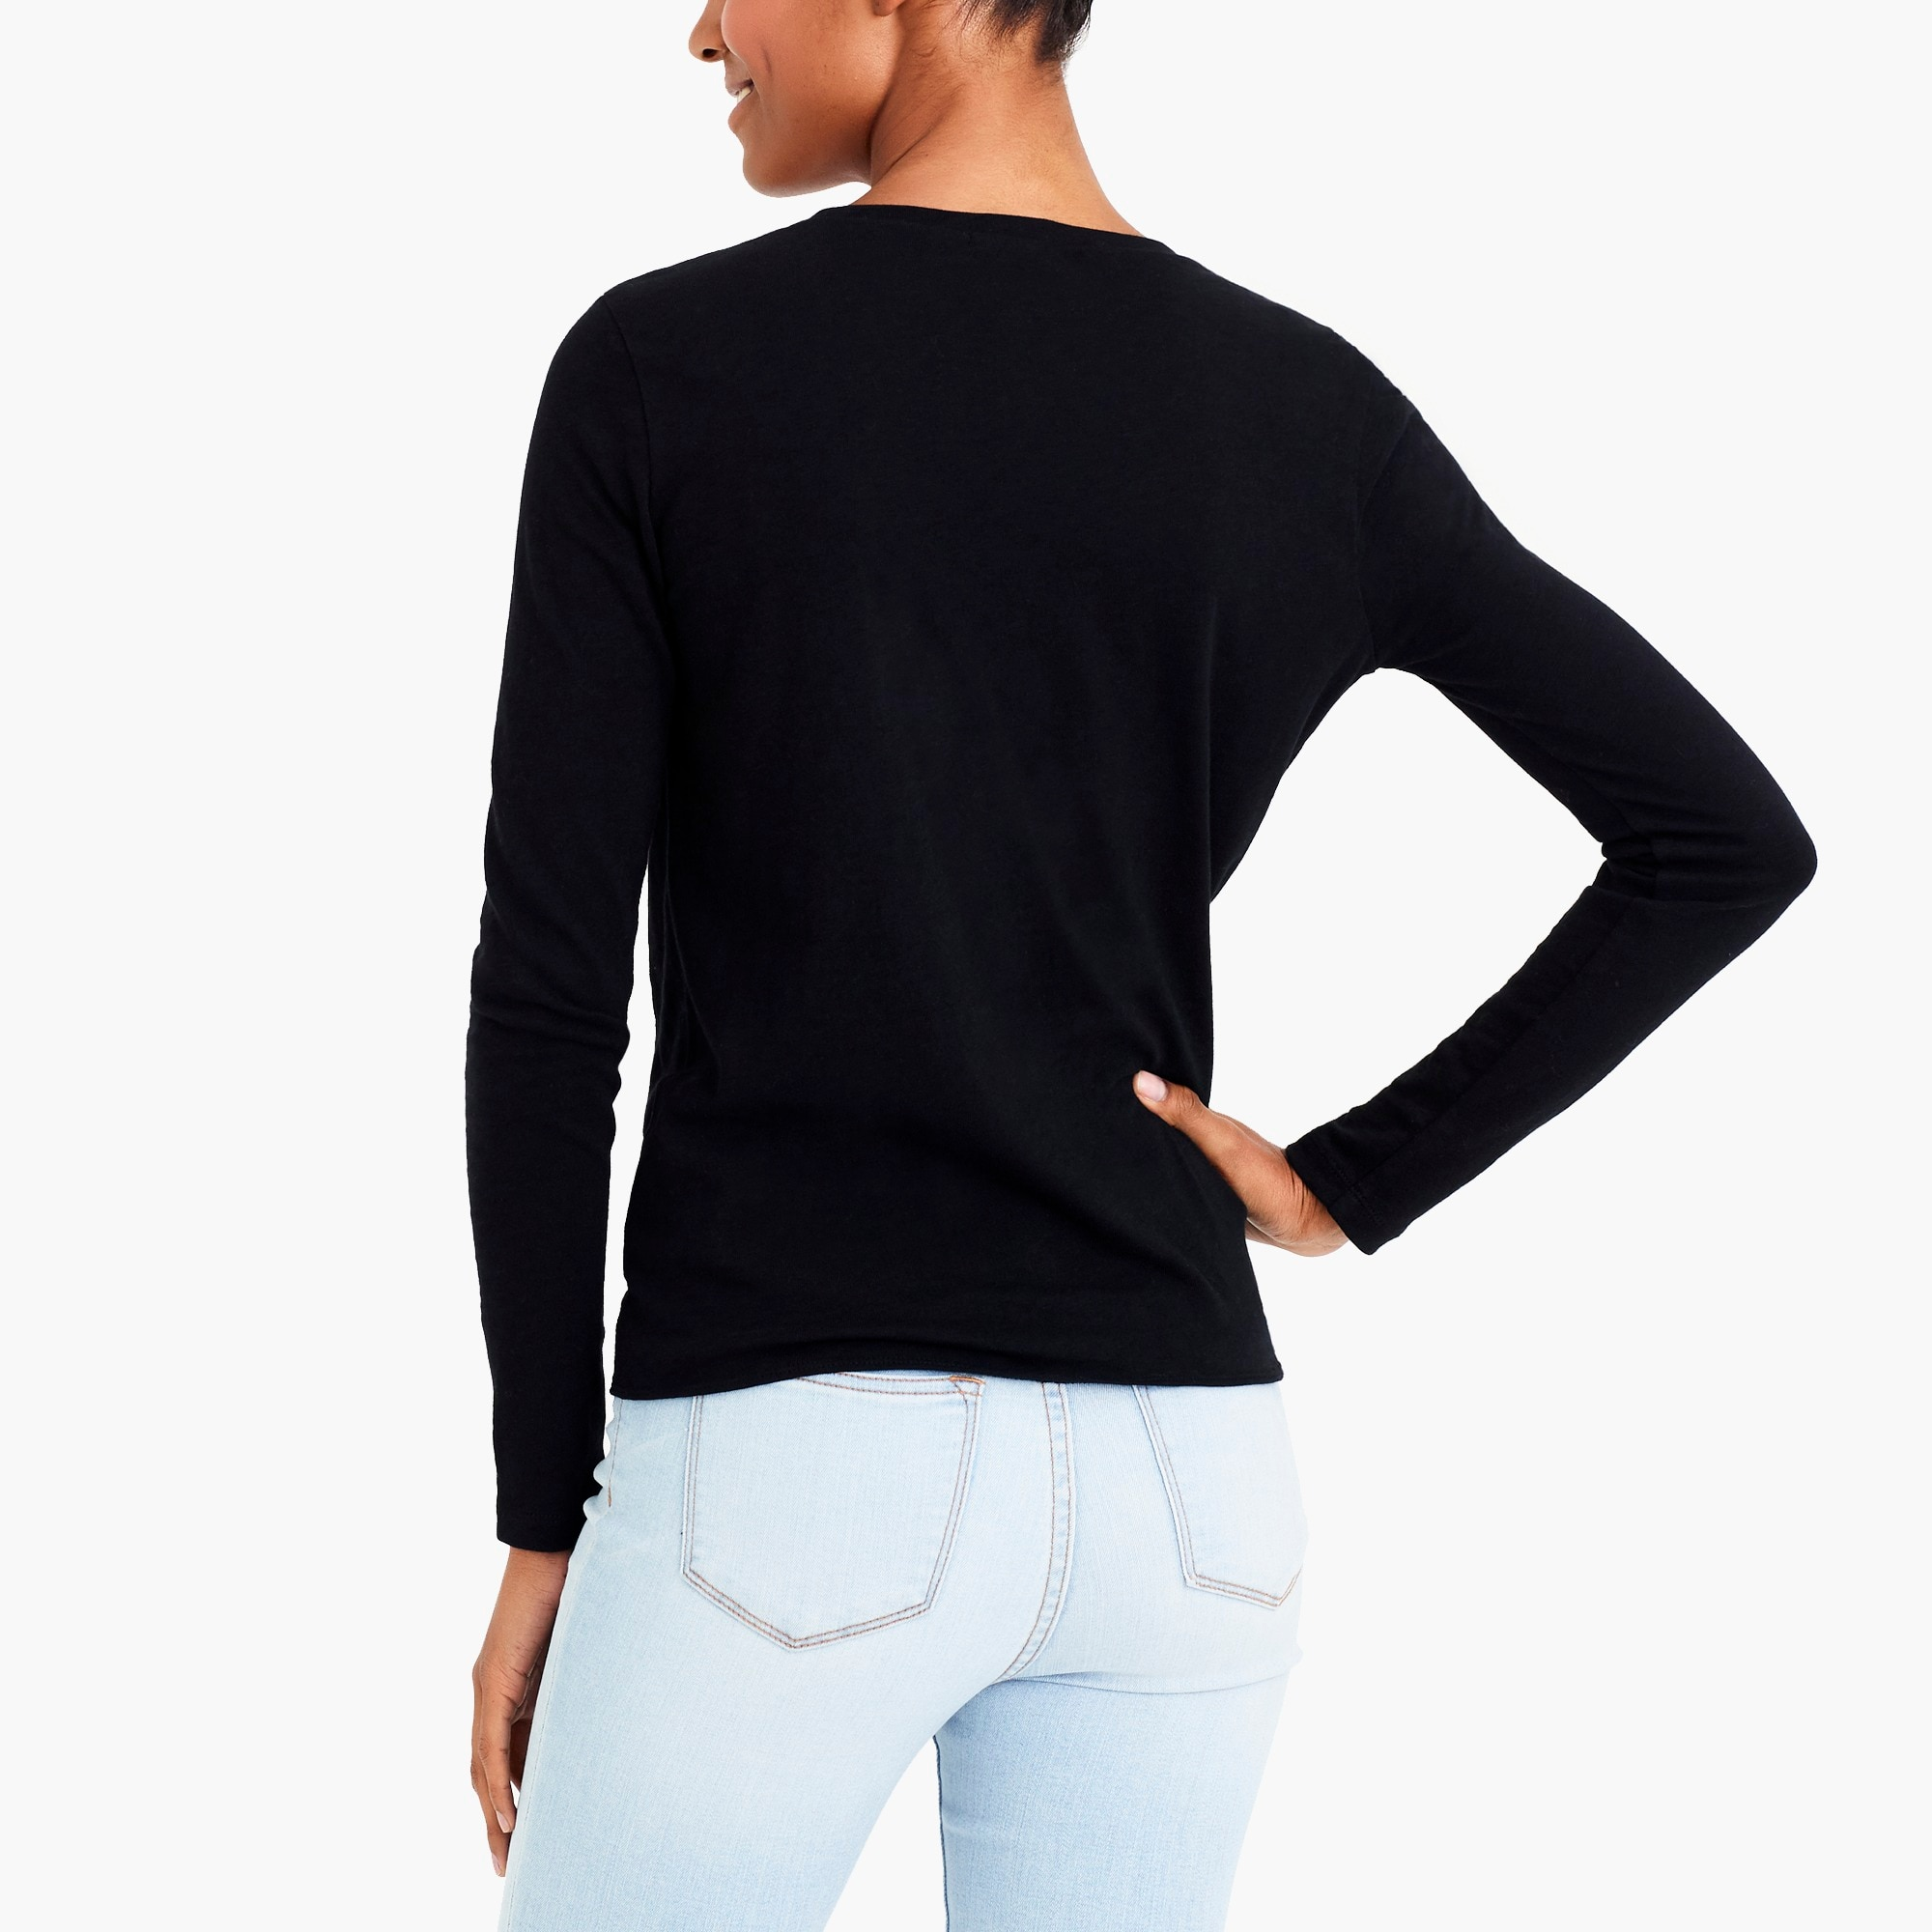 Image 3 for Long-sleeve tie-waist T-shirt